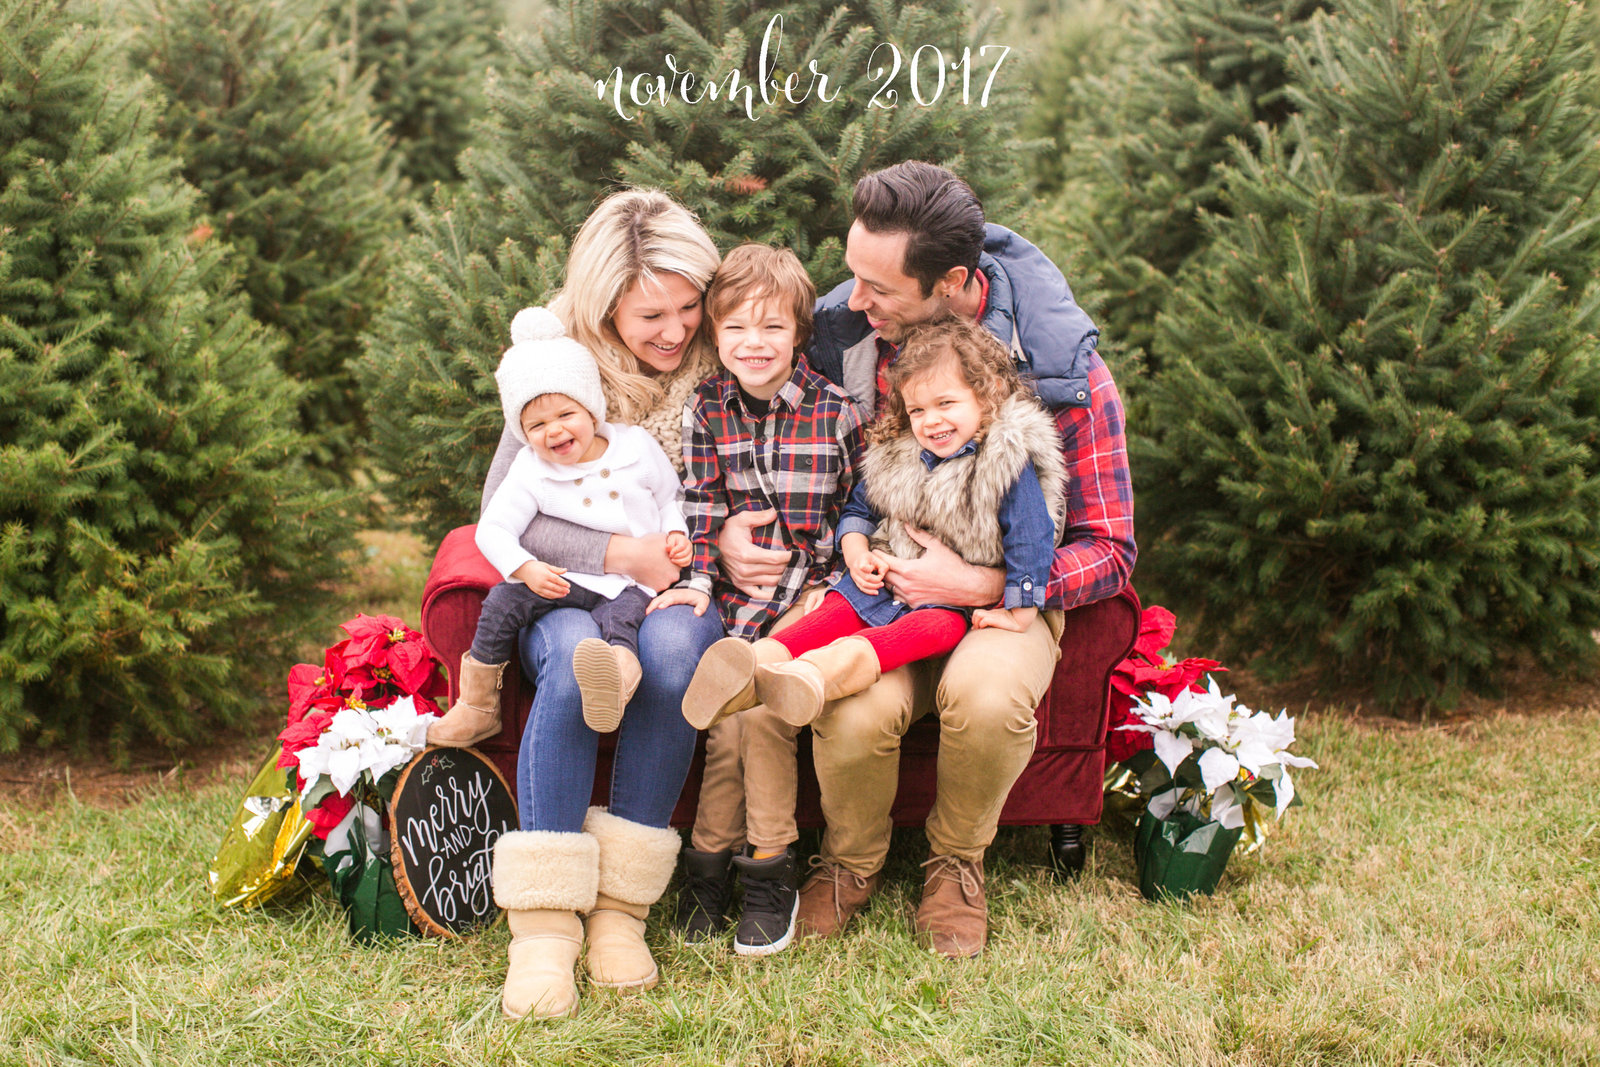 57Northern_VA_Christmas_Tree_Farm_Mini_Session107